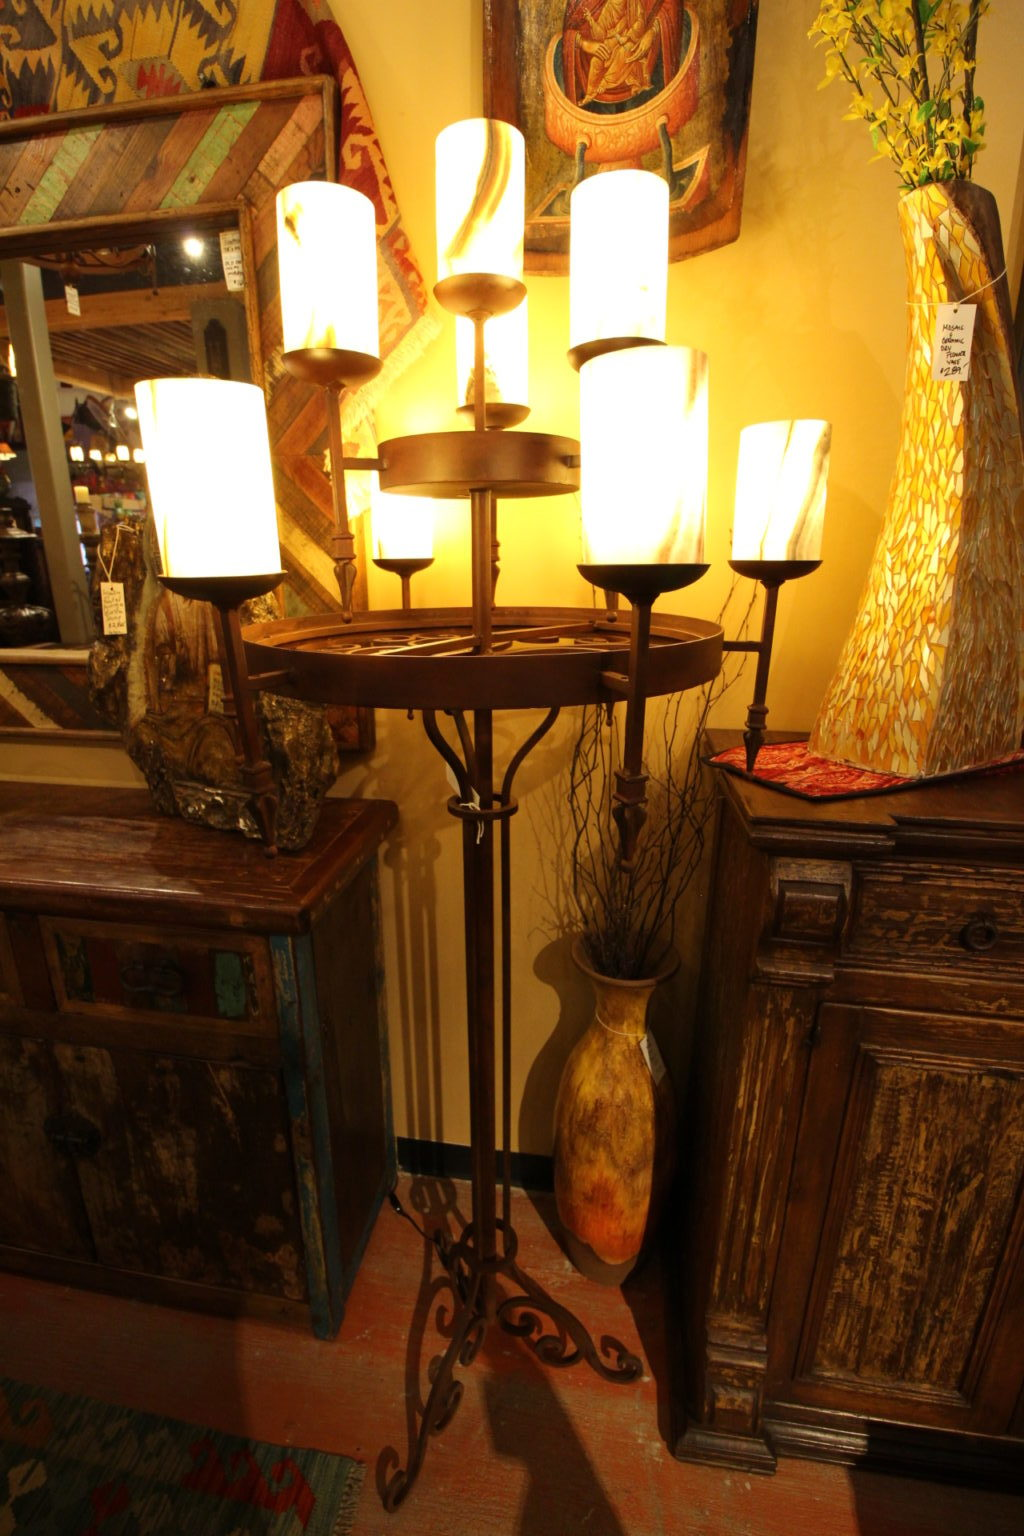 25 Aros Floor Lamp With Onyx Shades The Rustic Gallery